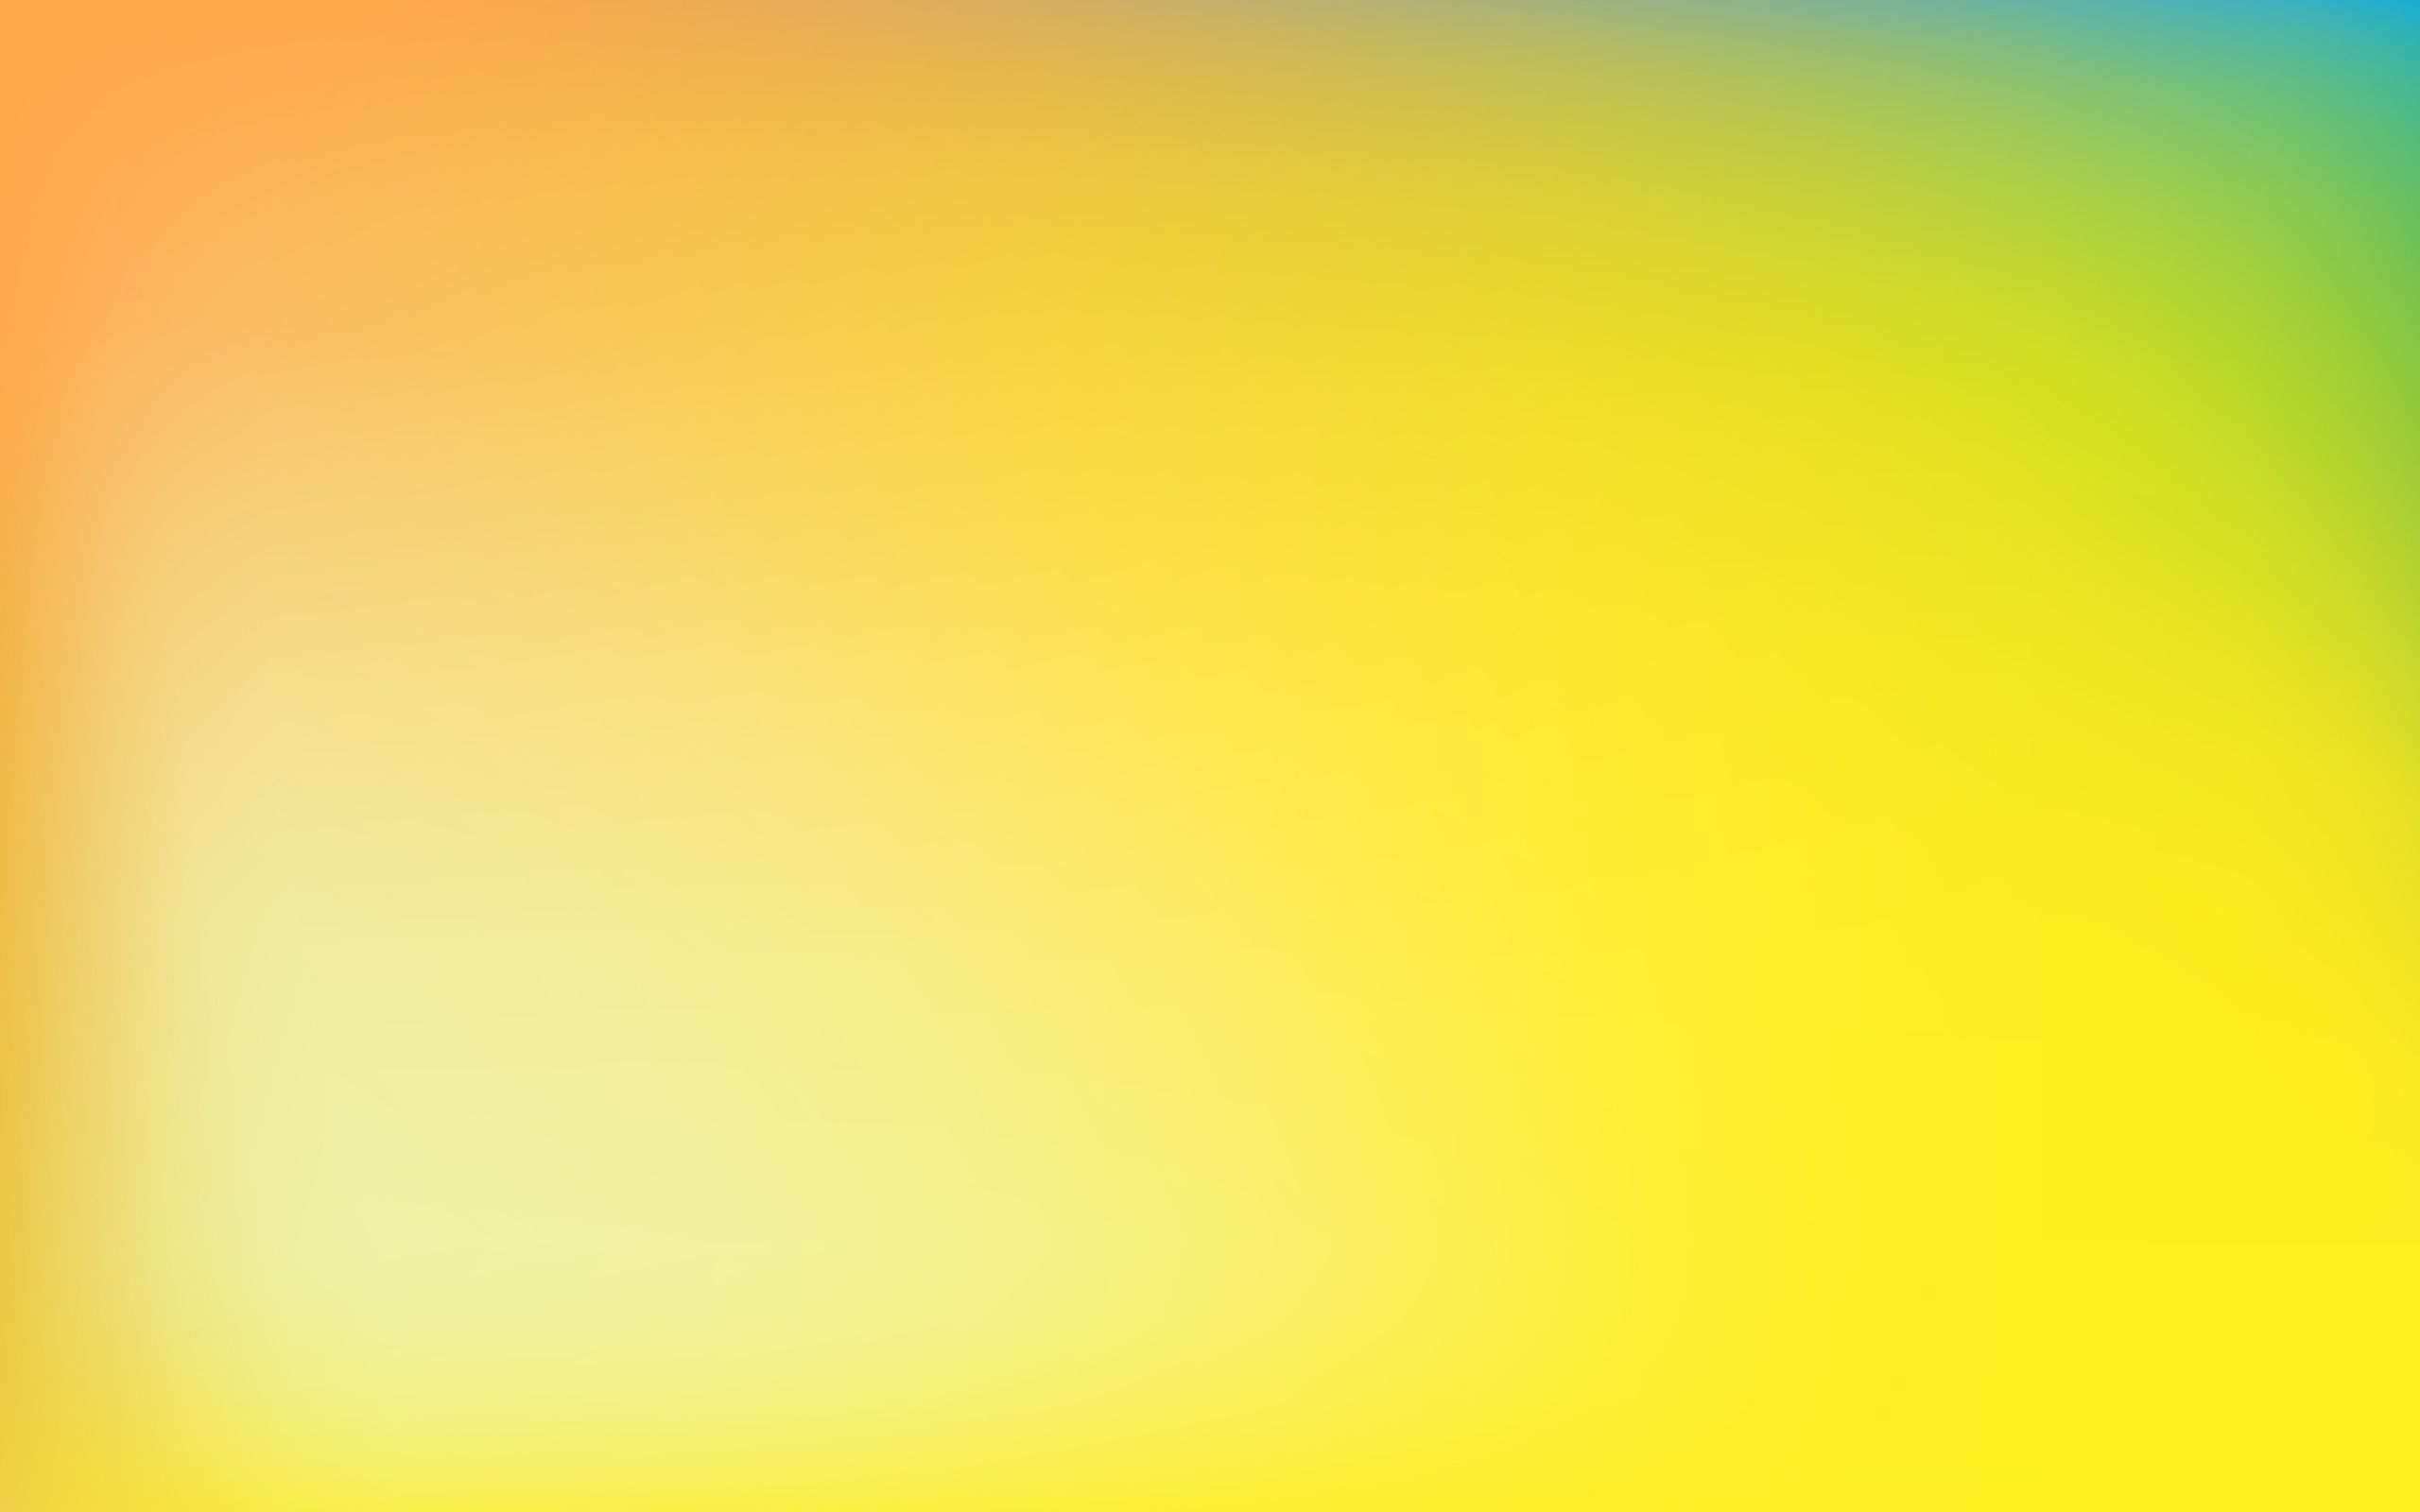 yellow wallpapers - top free yellow backgrounds